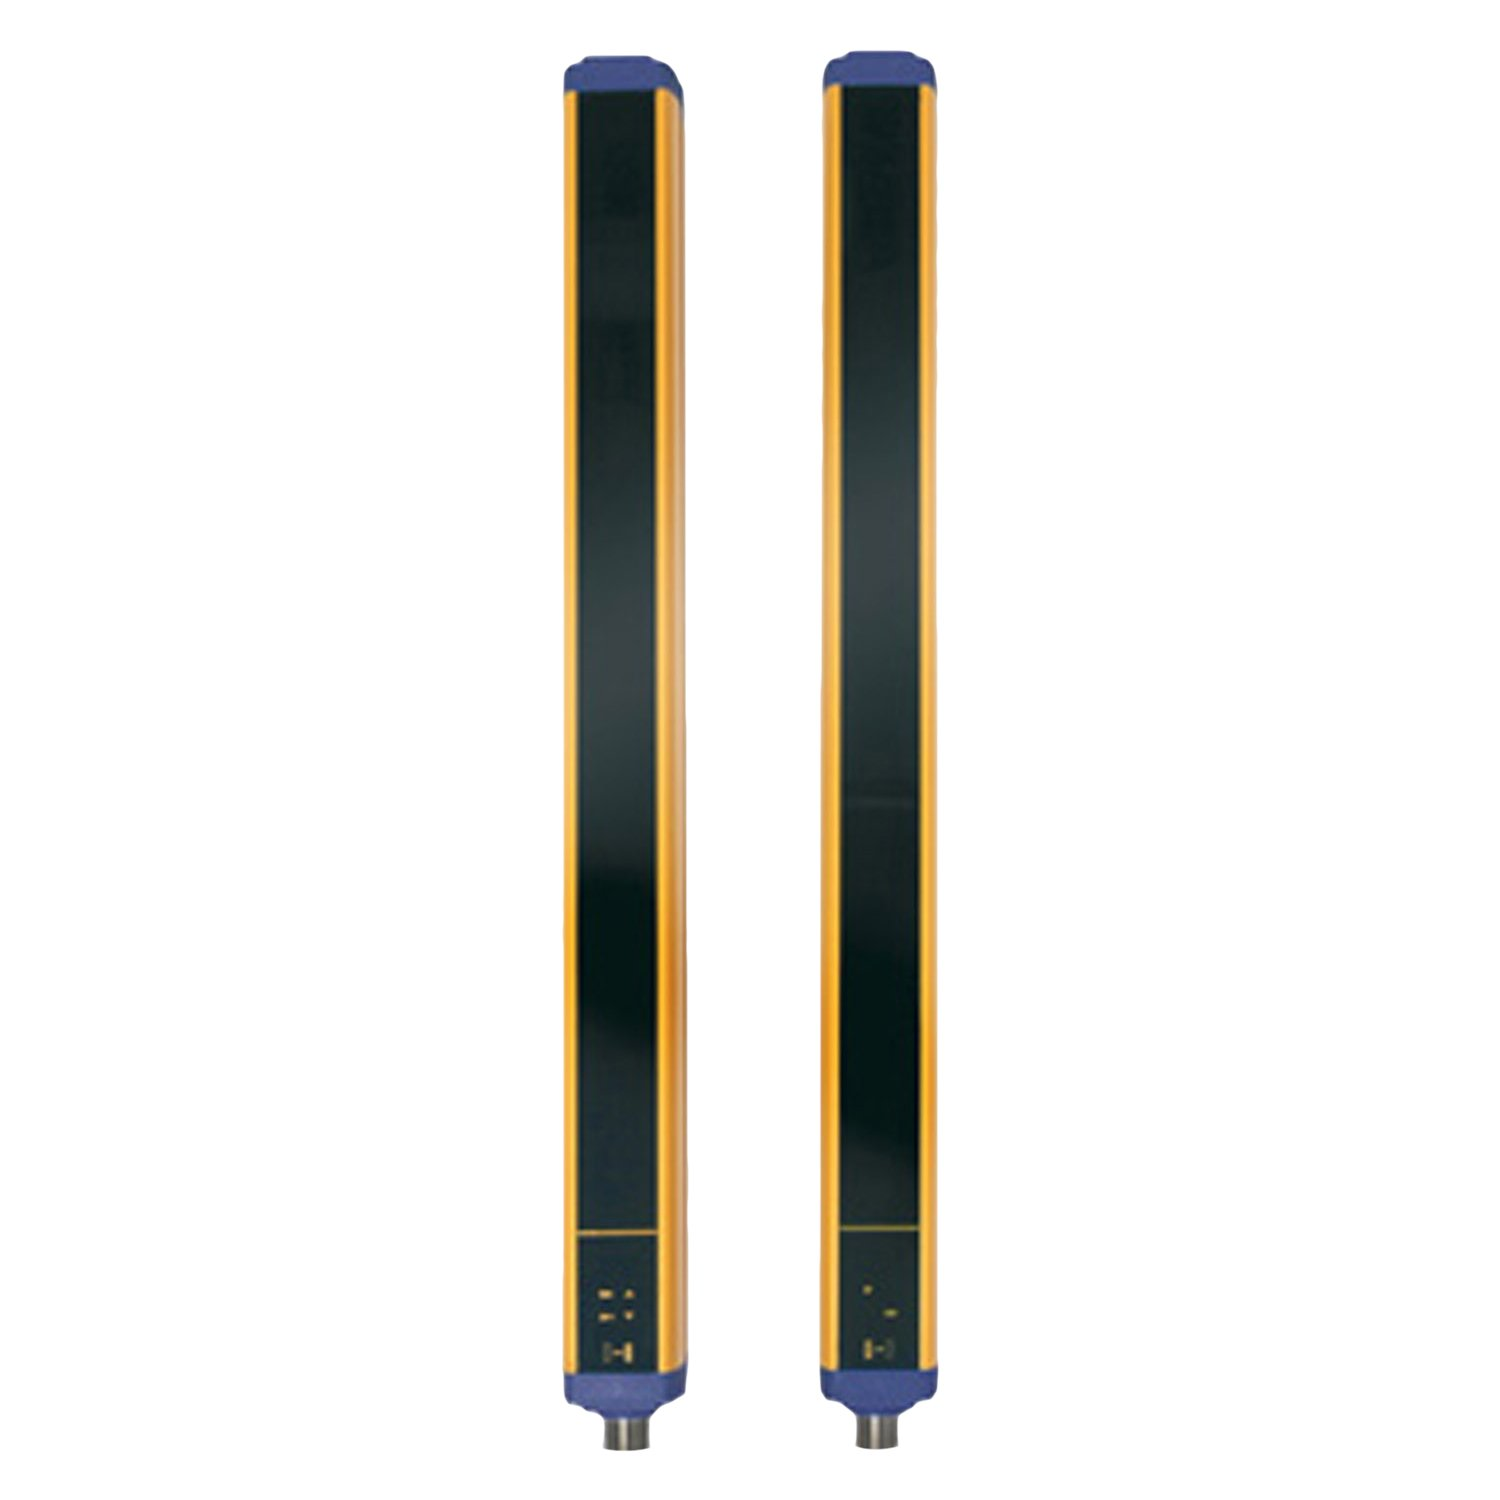 Type 4 150 mm Controlled Height ASI 957901120 Hand Safety Light Curtain Sensor 24 VDC 0.2 m to 19 m Operating Distance